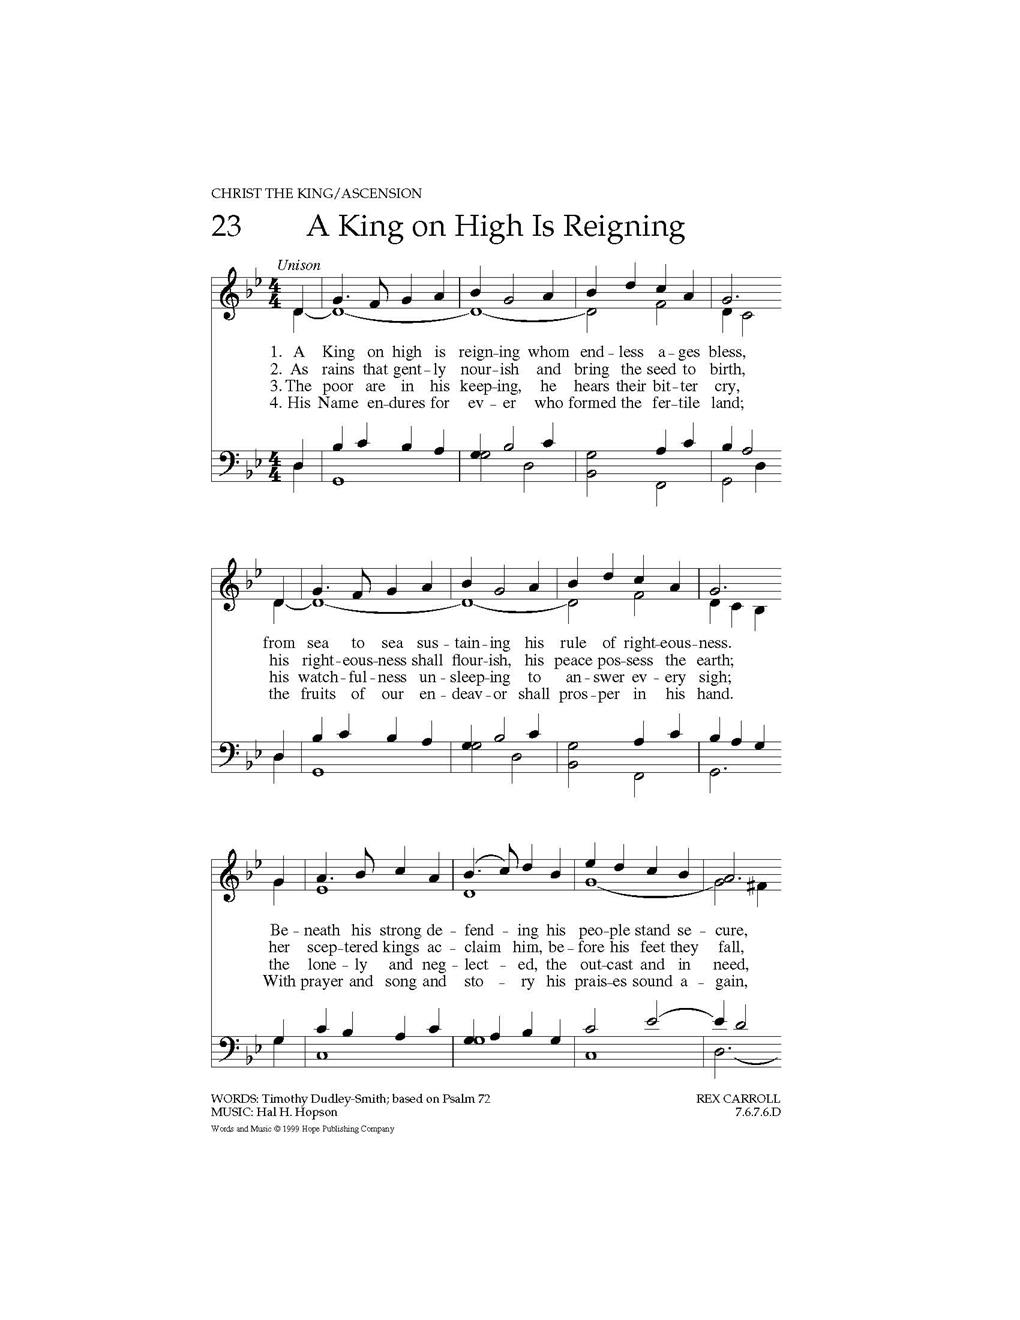 A King on High Is Reignin - Hope Publishing Company